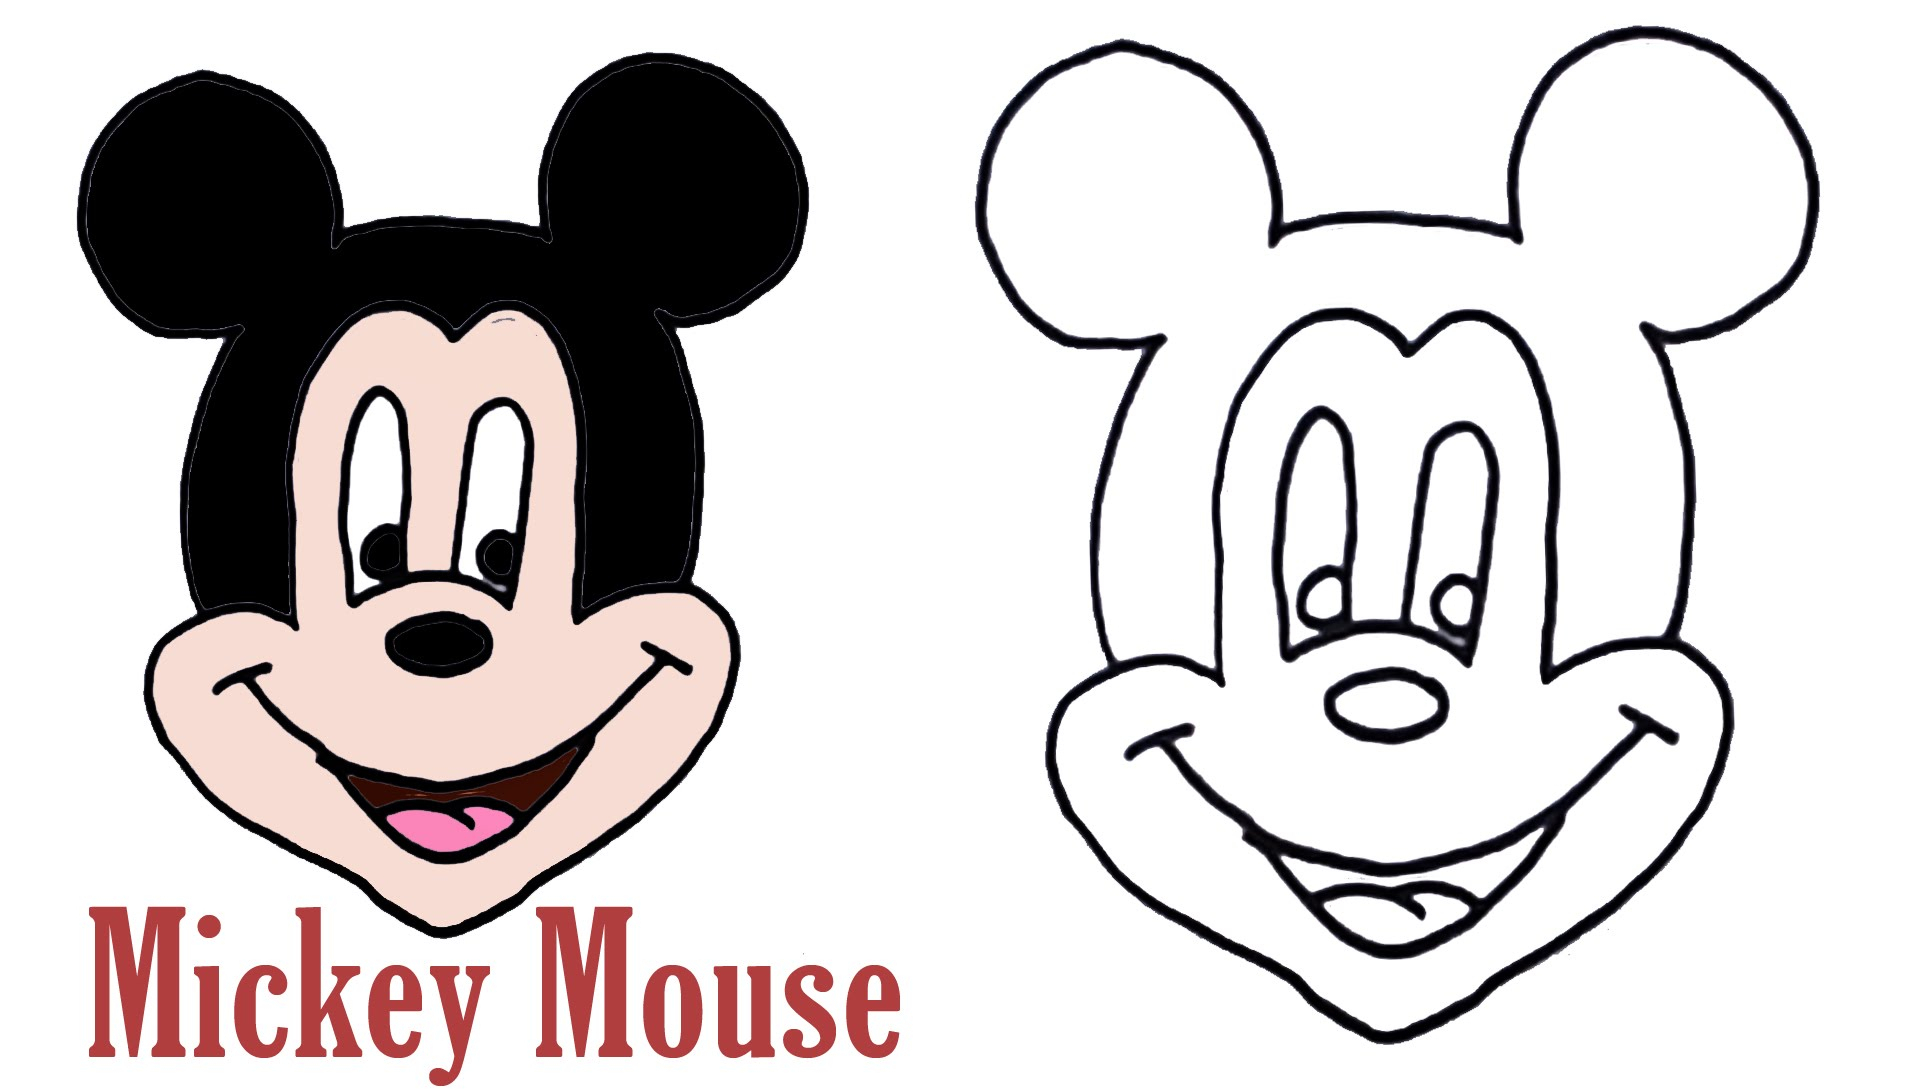 1920x1090 Cartoon Of Mickey Mouse For Draw Cartoon Drawing Mickey Mouse